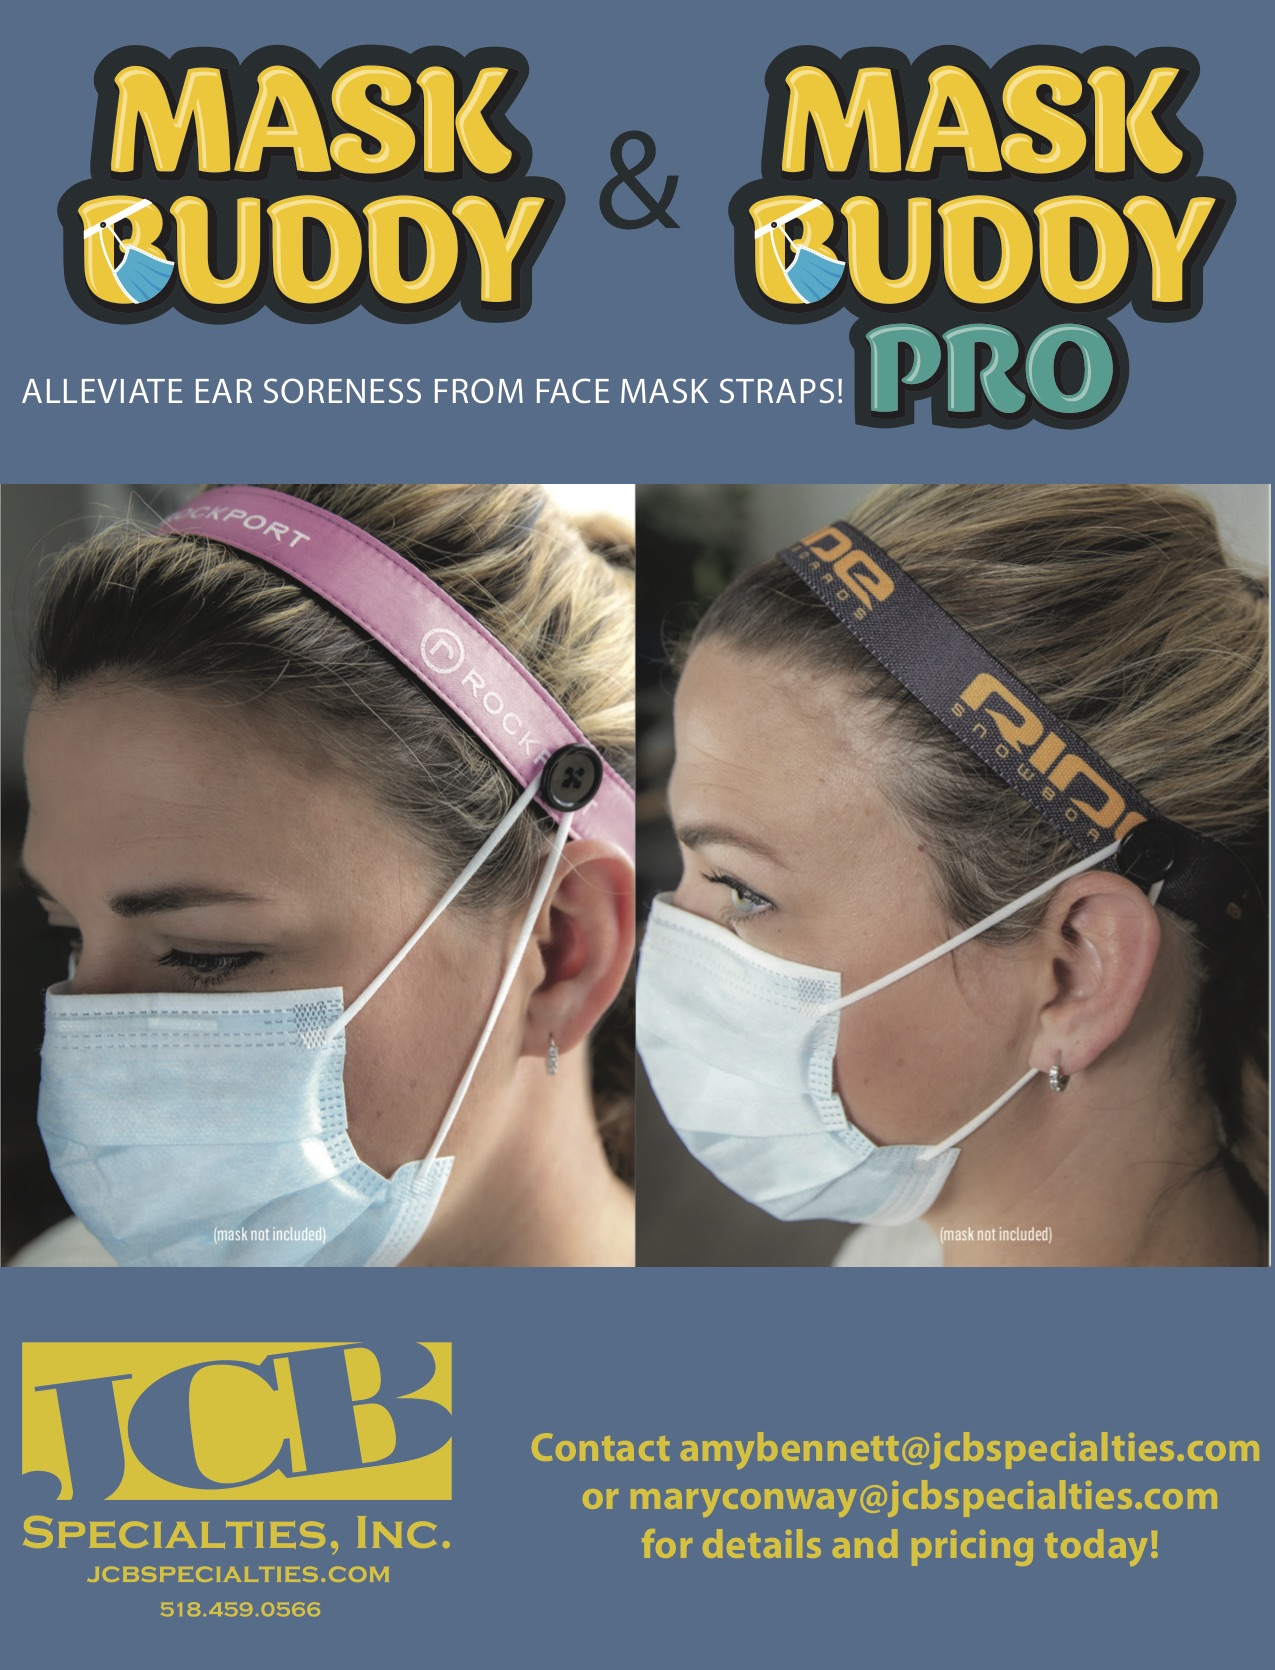 Mask-Buddy-JCB-copy